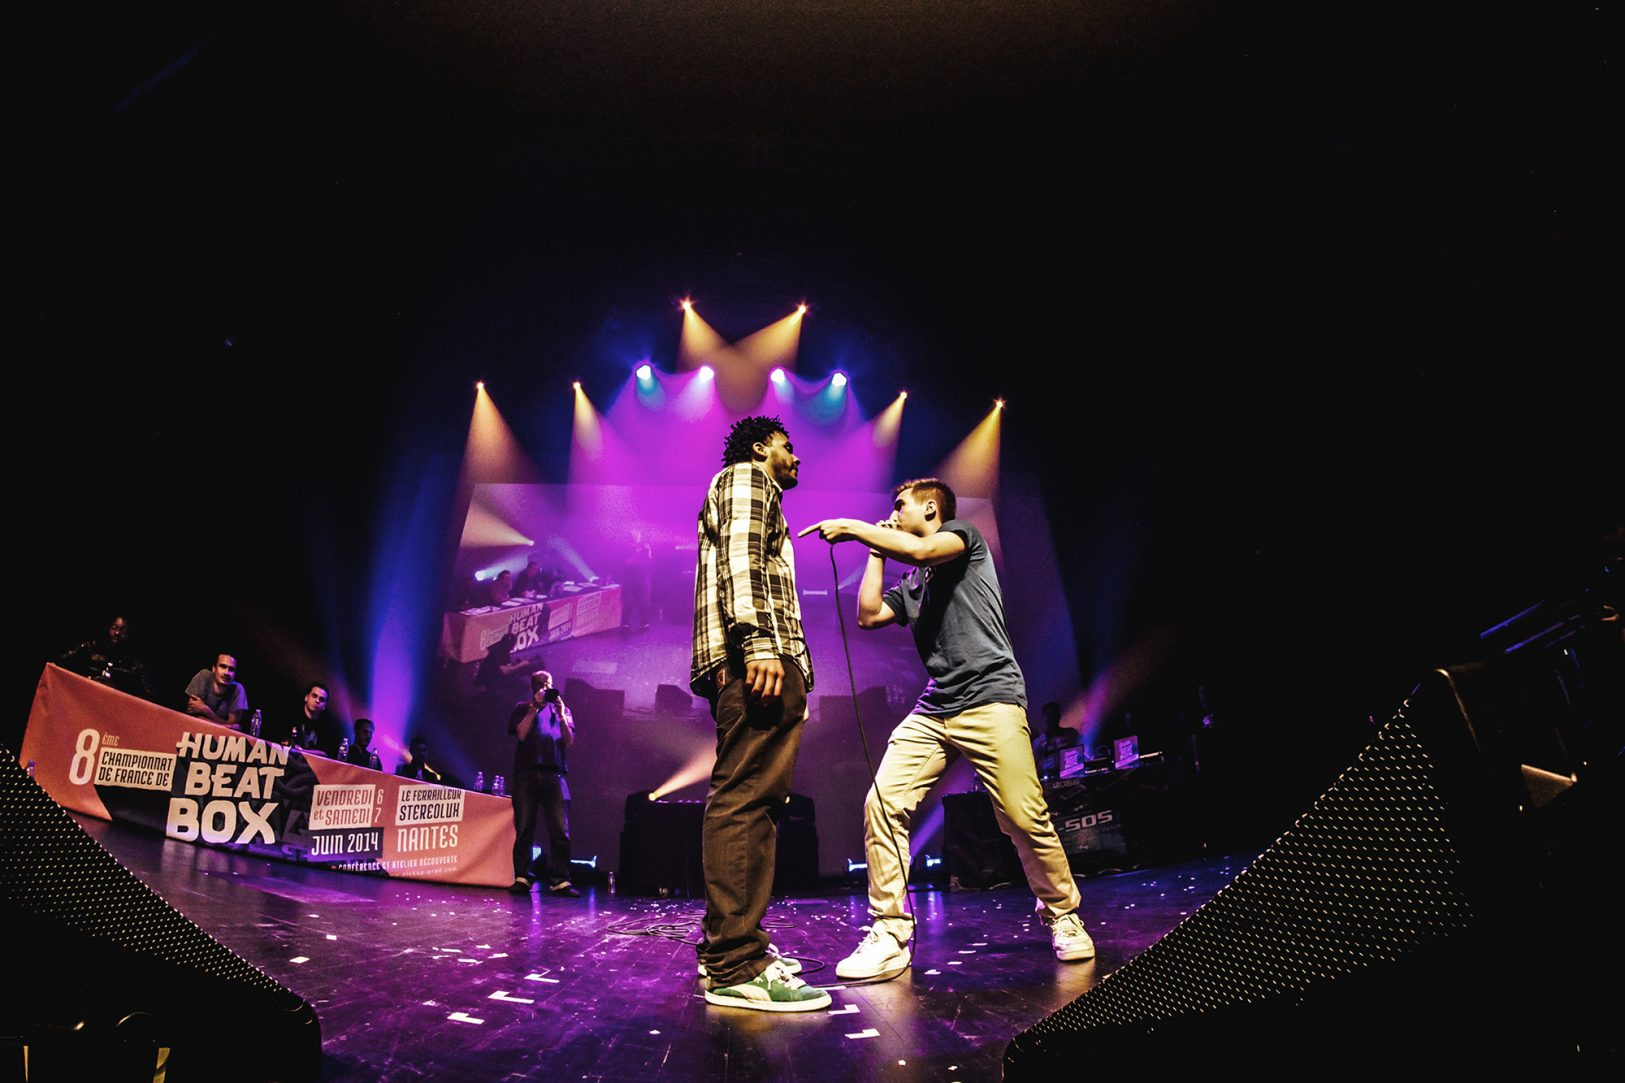 beatbox france 14 Stereolux HD 25